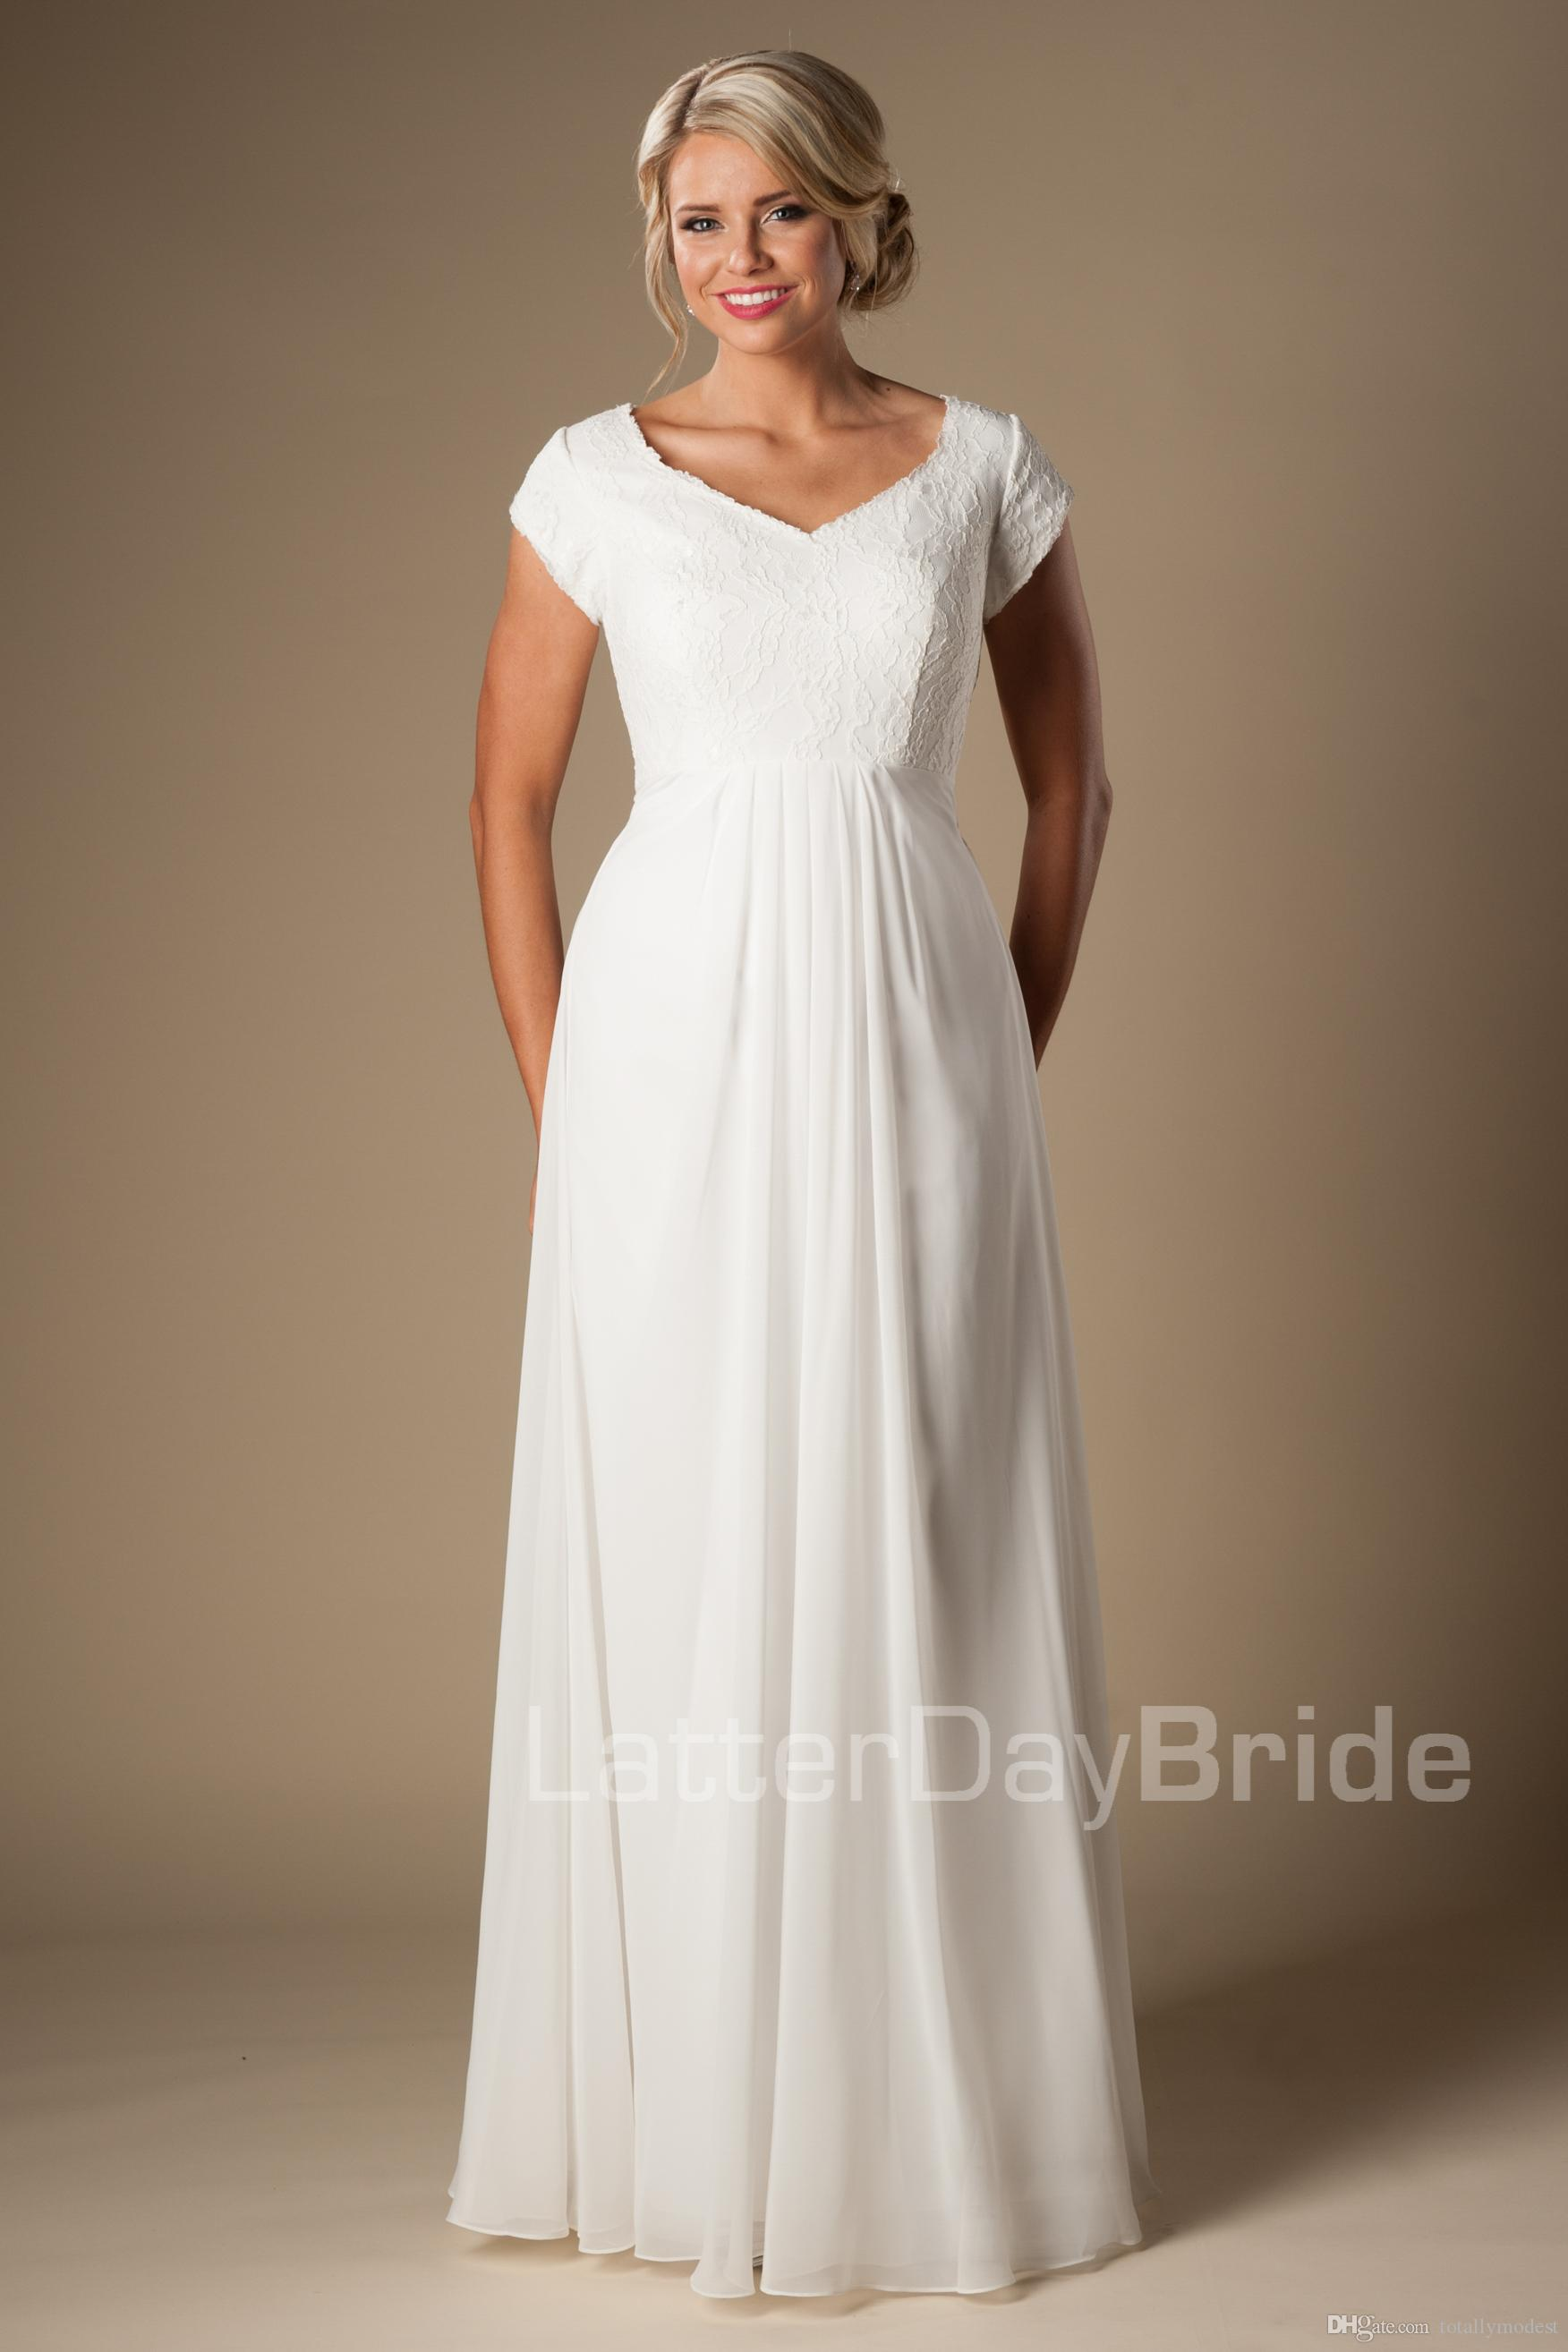 Discount Simple Ivory Lace Chiffon Modest Beach Wedding Dresses Cap Sleeves V Neck Long Floor Bridal Gowns A Line Informal Reception Pictures: Informal Second Wedding Dresses Simple At Websimilar.org